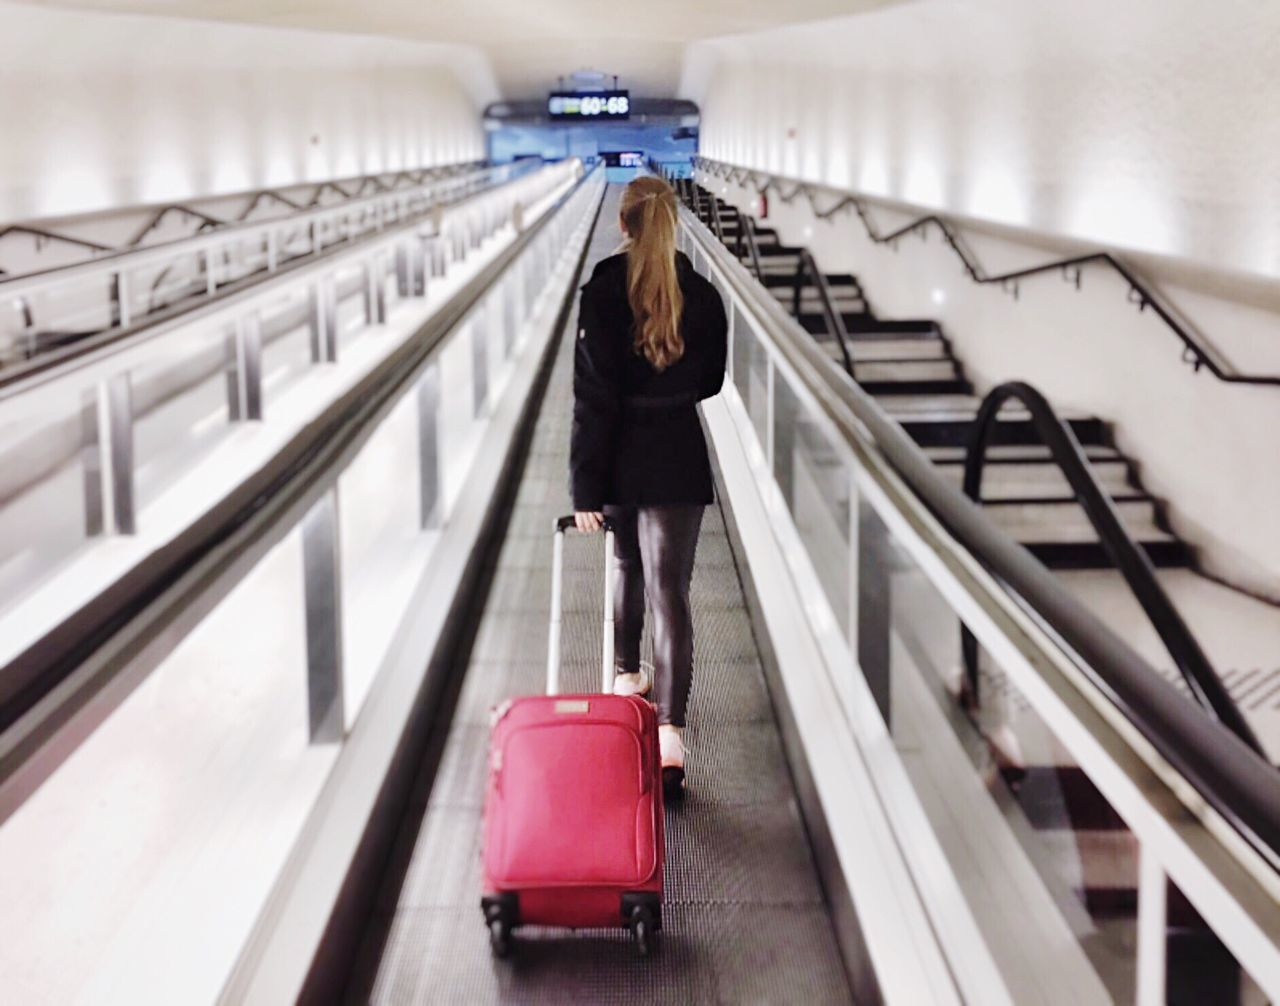 On my way - On My Way Airport Runway Airportphotography Airport On My Way To Work Airport Terminal Airportlife Red Suitcases  Suitcase Runway Flughafen Travelling Travel Young Adult Pony Tail  Abstract Perspectives From The Back Geometric Shapes Futuristic Architecture Futuristic Symmetry Full Frame Capture The Moment